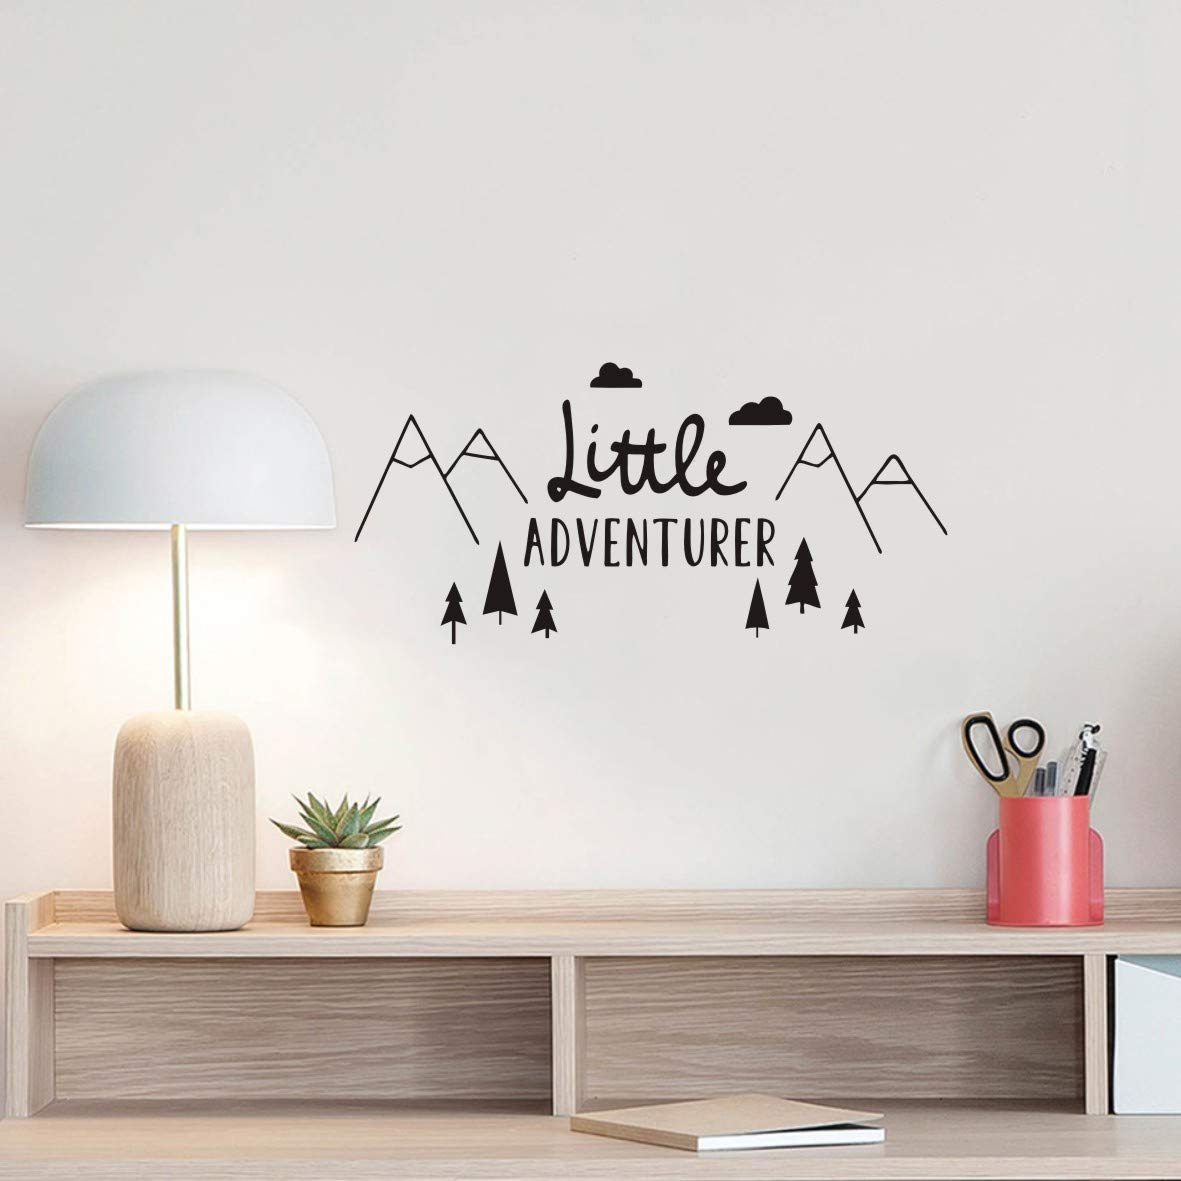 The Tribal Mountain Little Adventure Wall Sticker Art Travel Adventures Mountains Wall Decal for Kids Room Nursery Room Bedroom Wall Art Murals Removable Boys Wall Poster QQ198 (57X27CM)